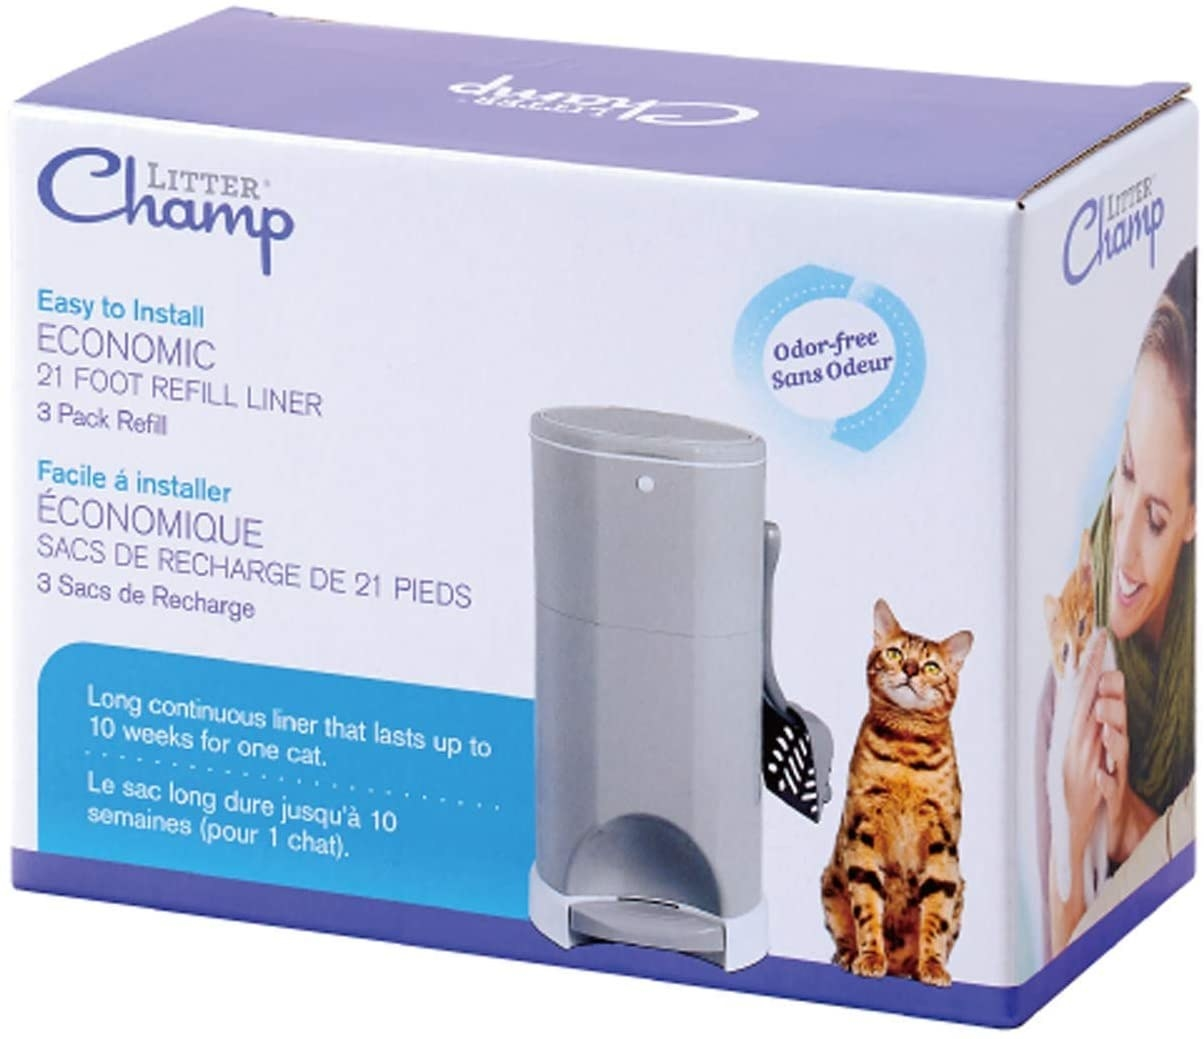 White and purple box of cat refill liners